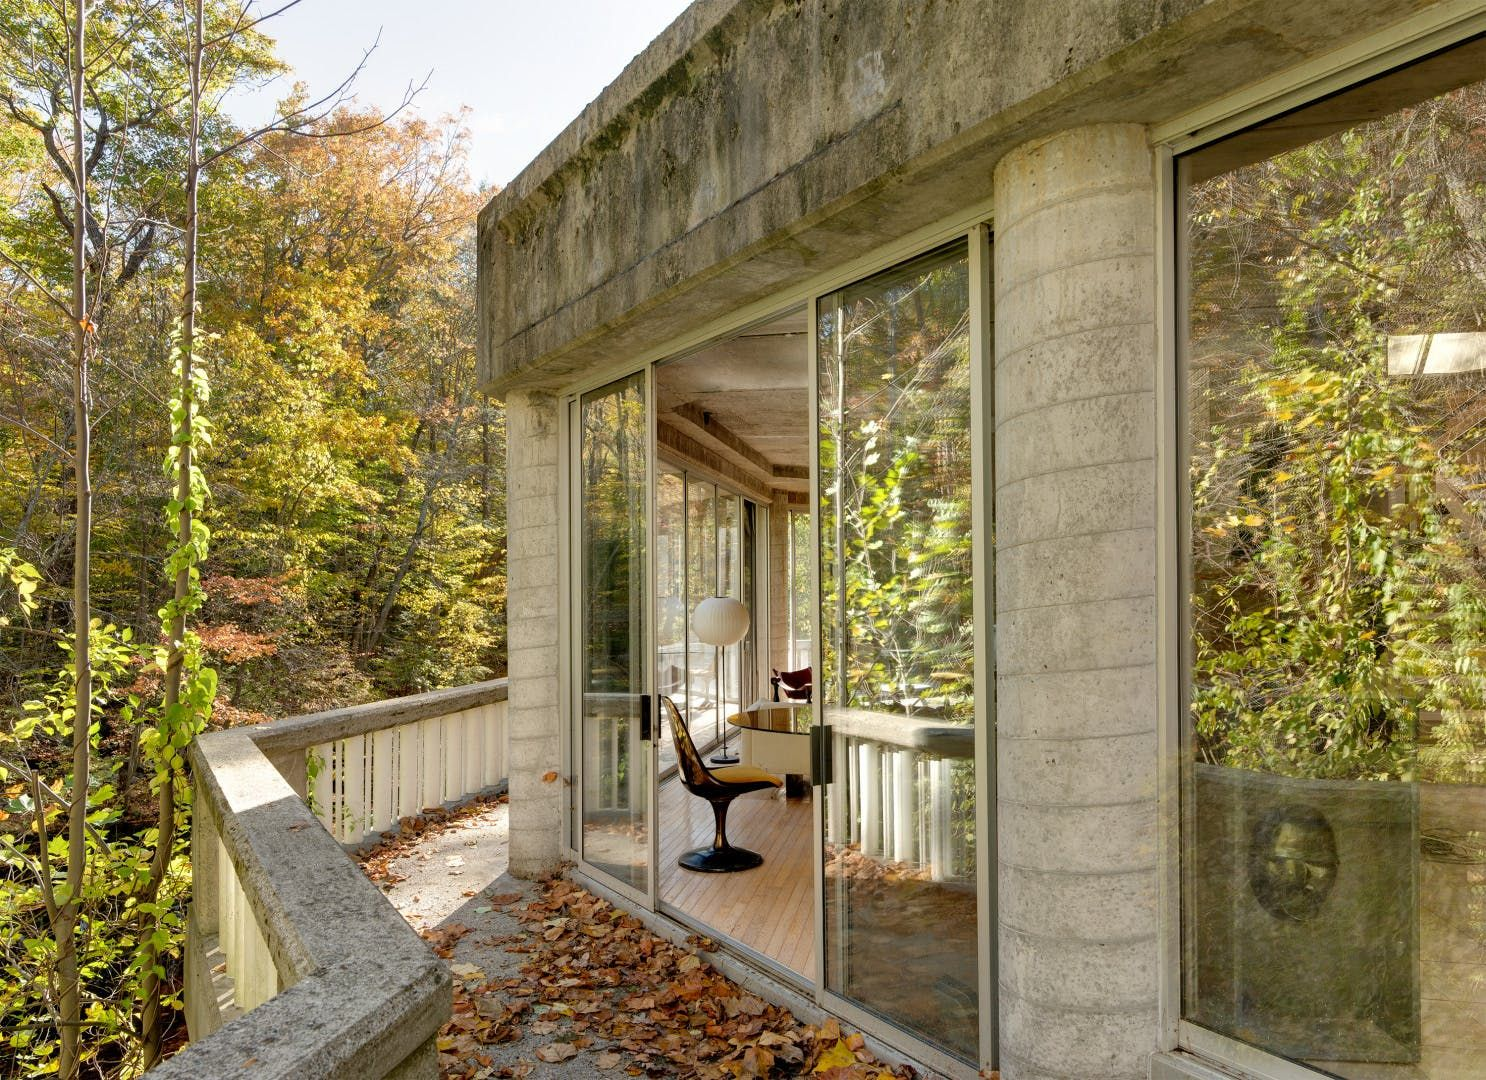 You Enter This Architect's Modernist Glass & Concrete Home